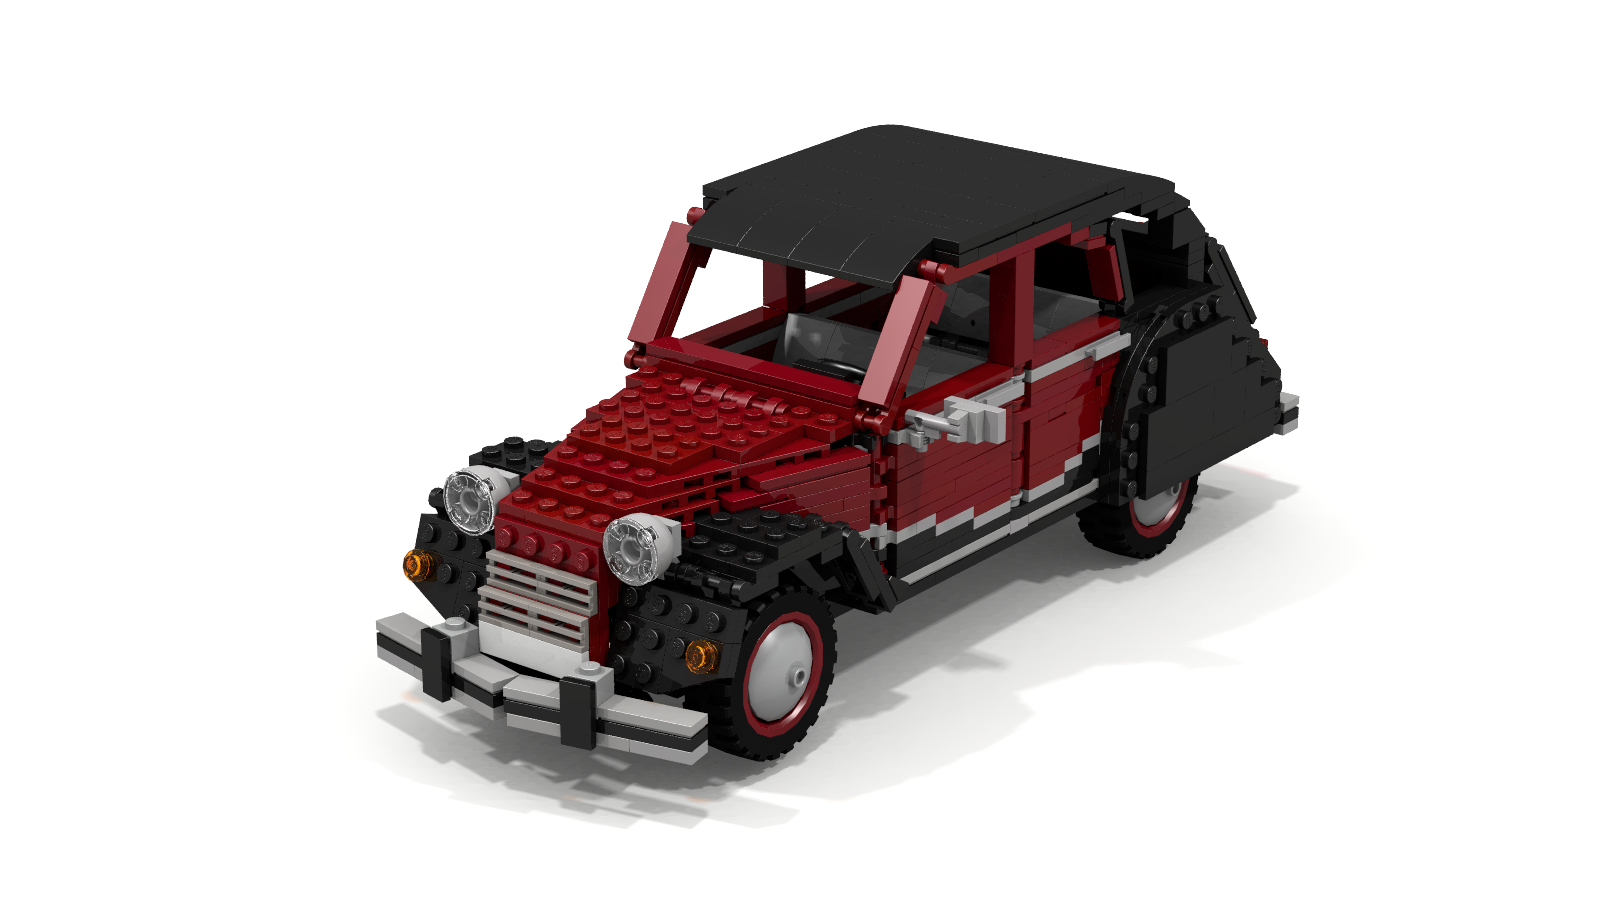 lego ideas - product ideas